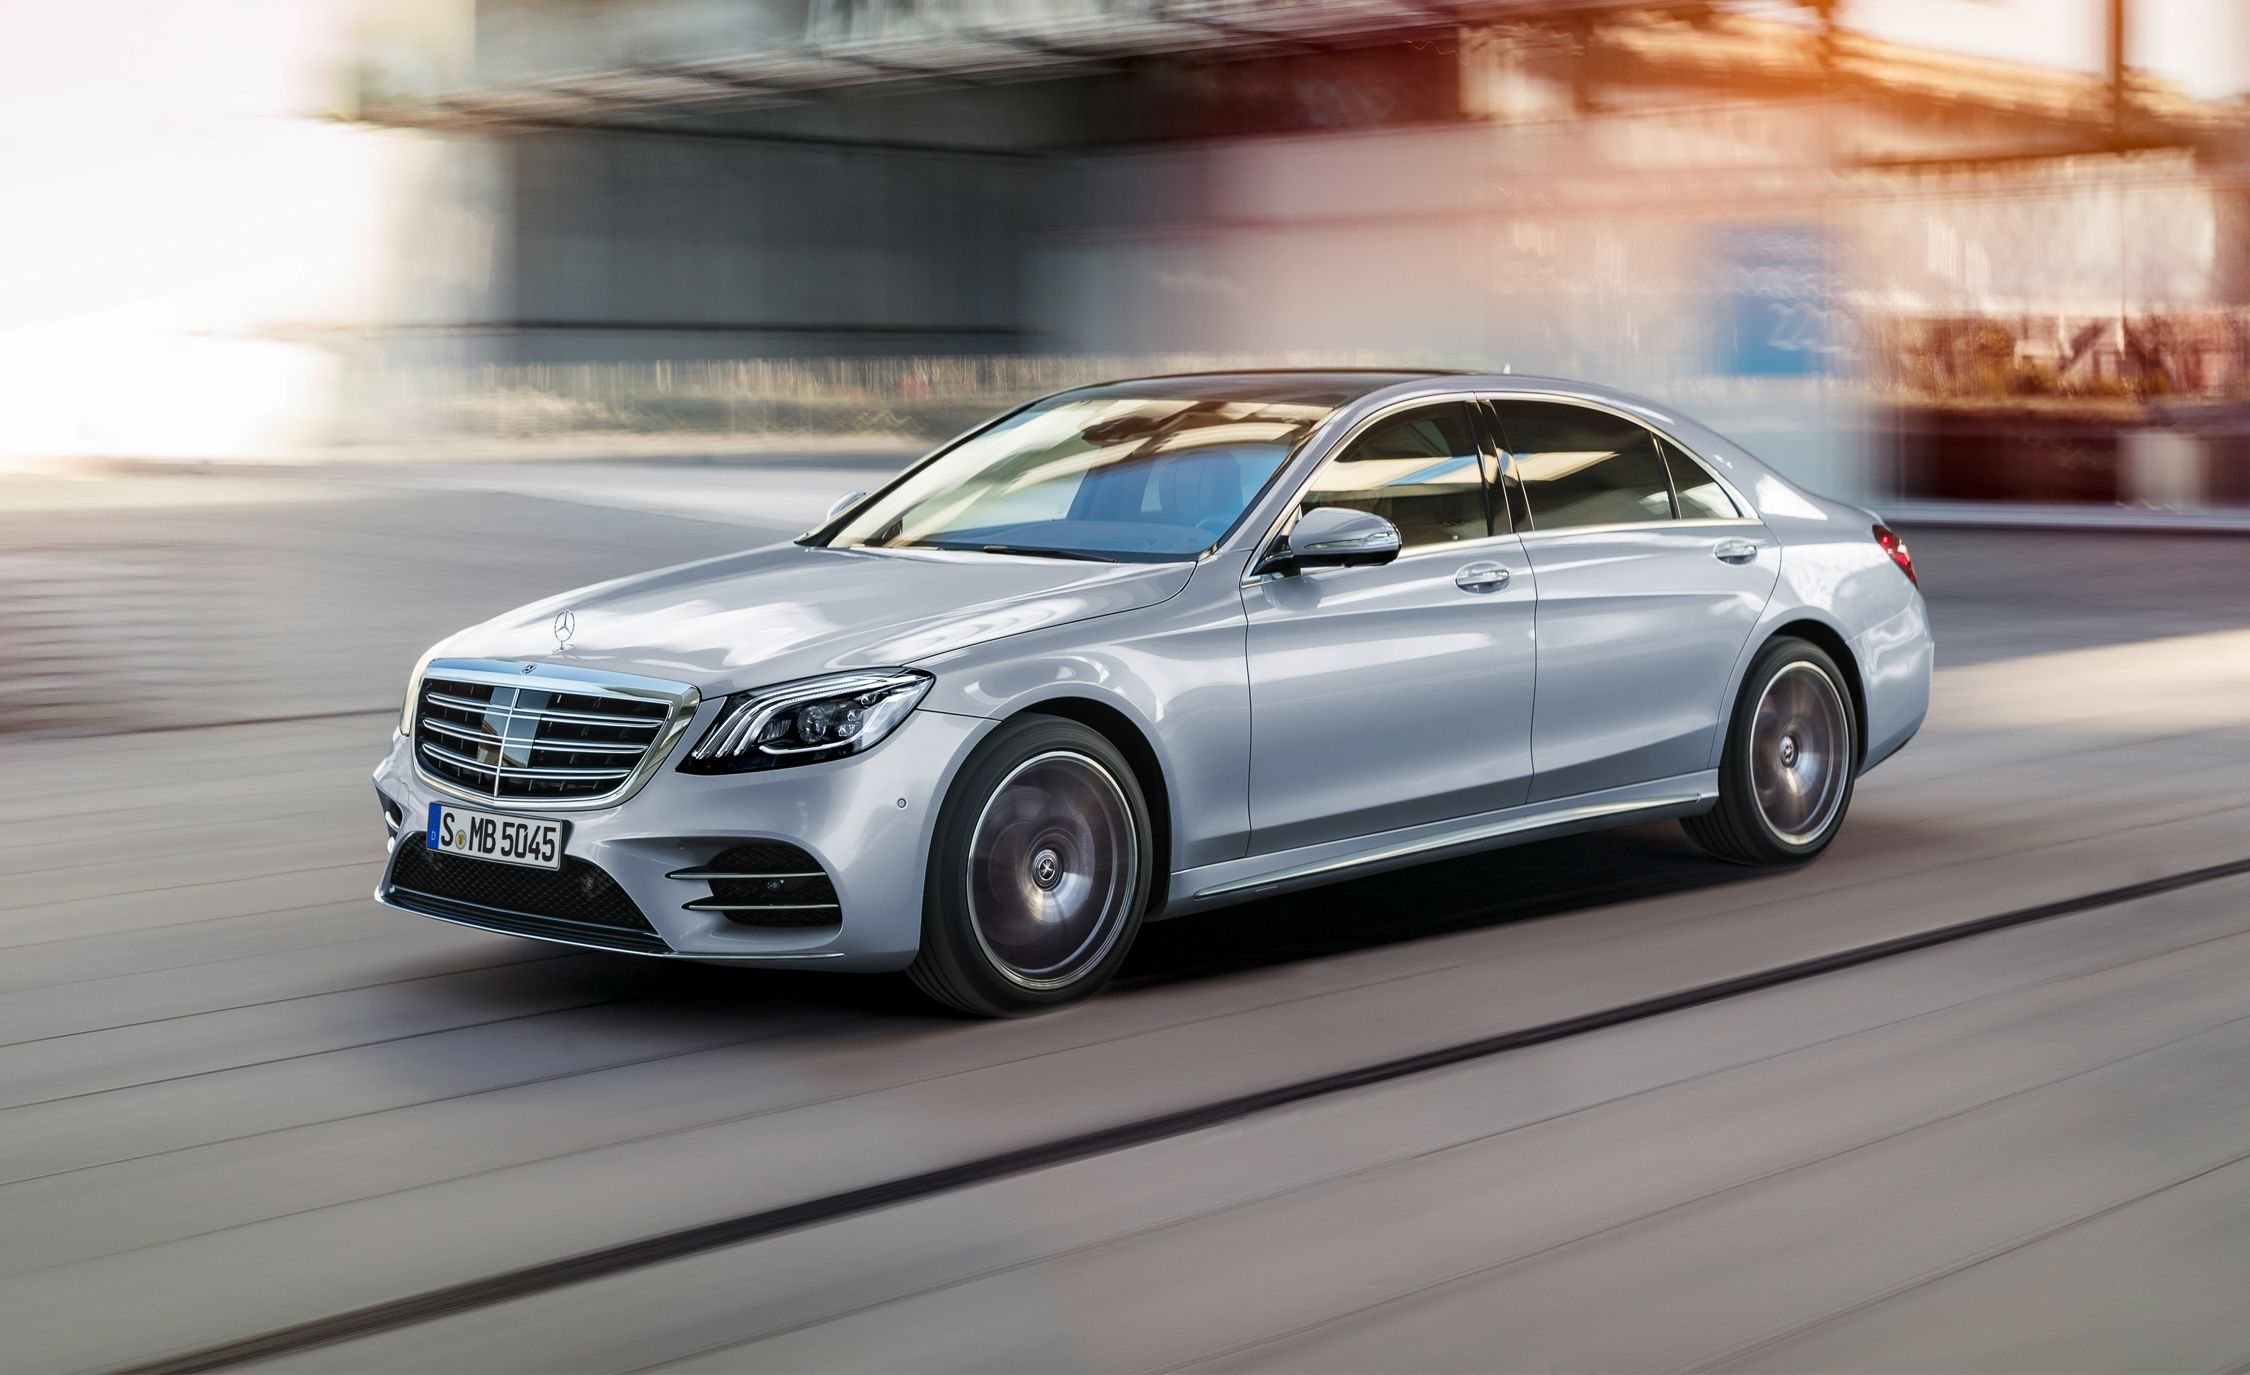 2018 mercedes benz s class sedan lineup detailed from top to bottom news car and driver